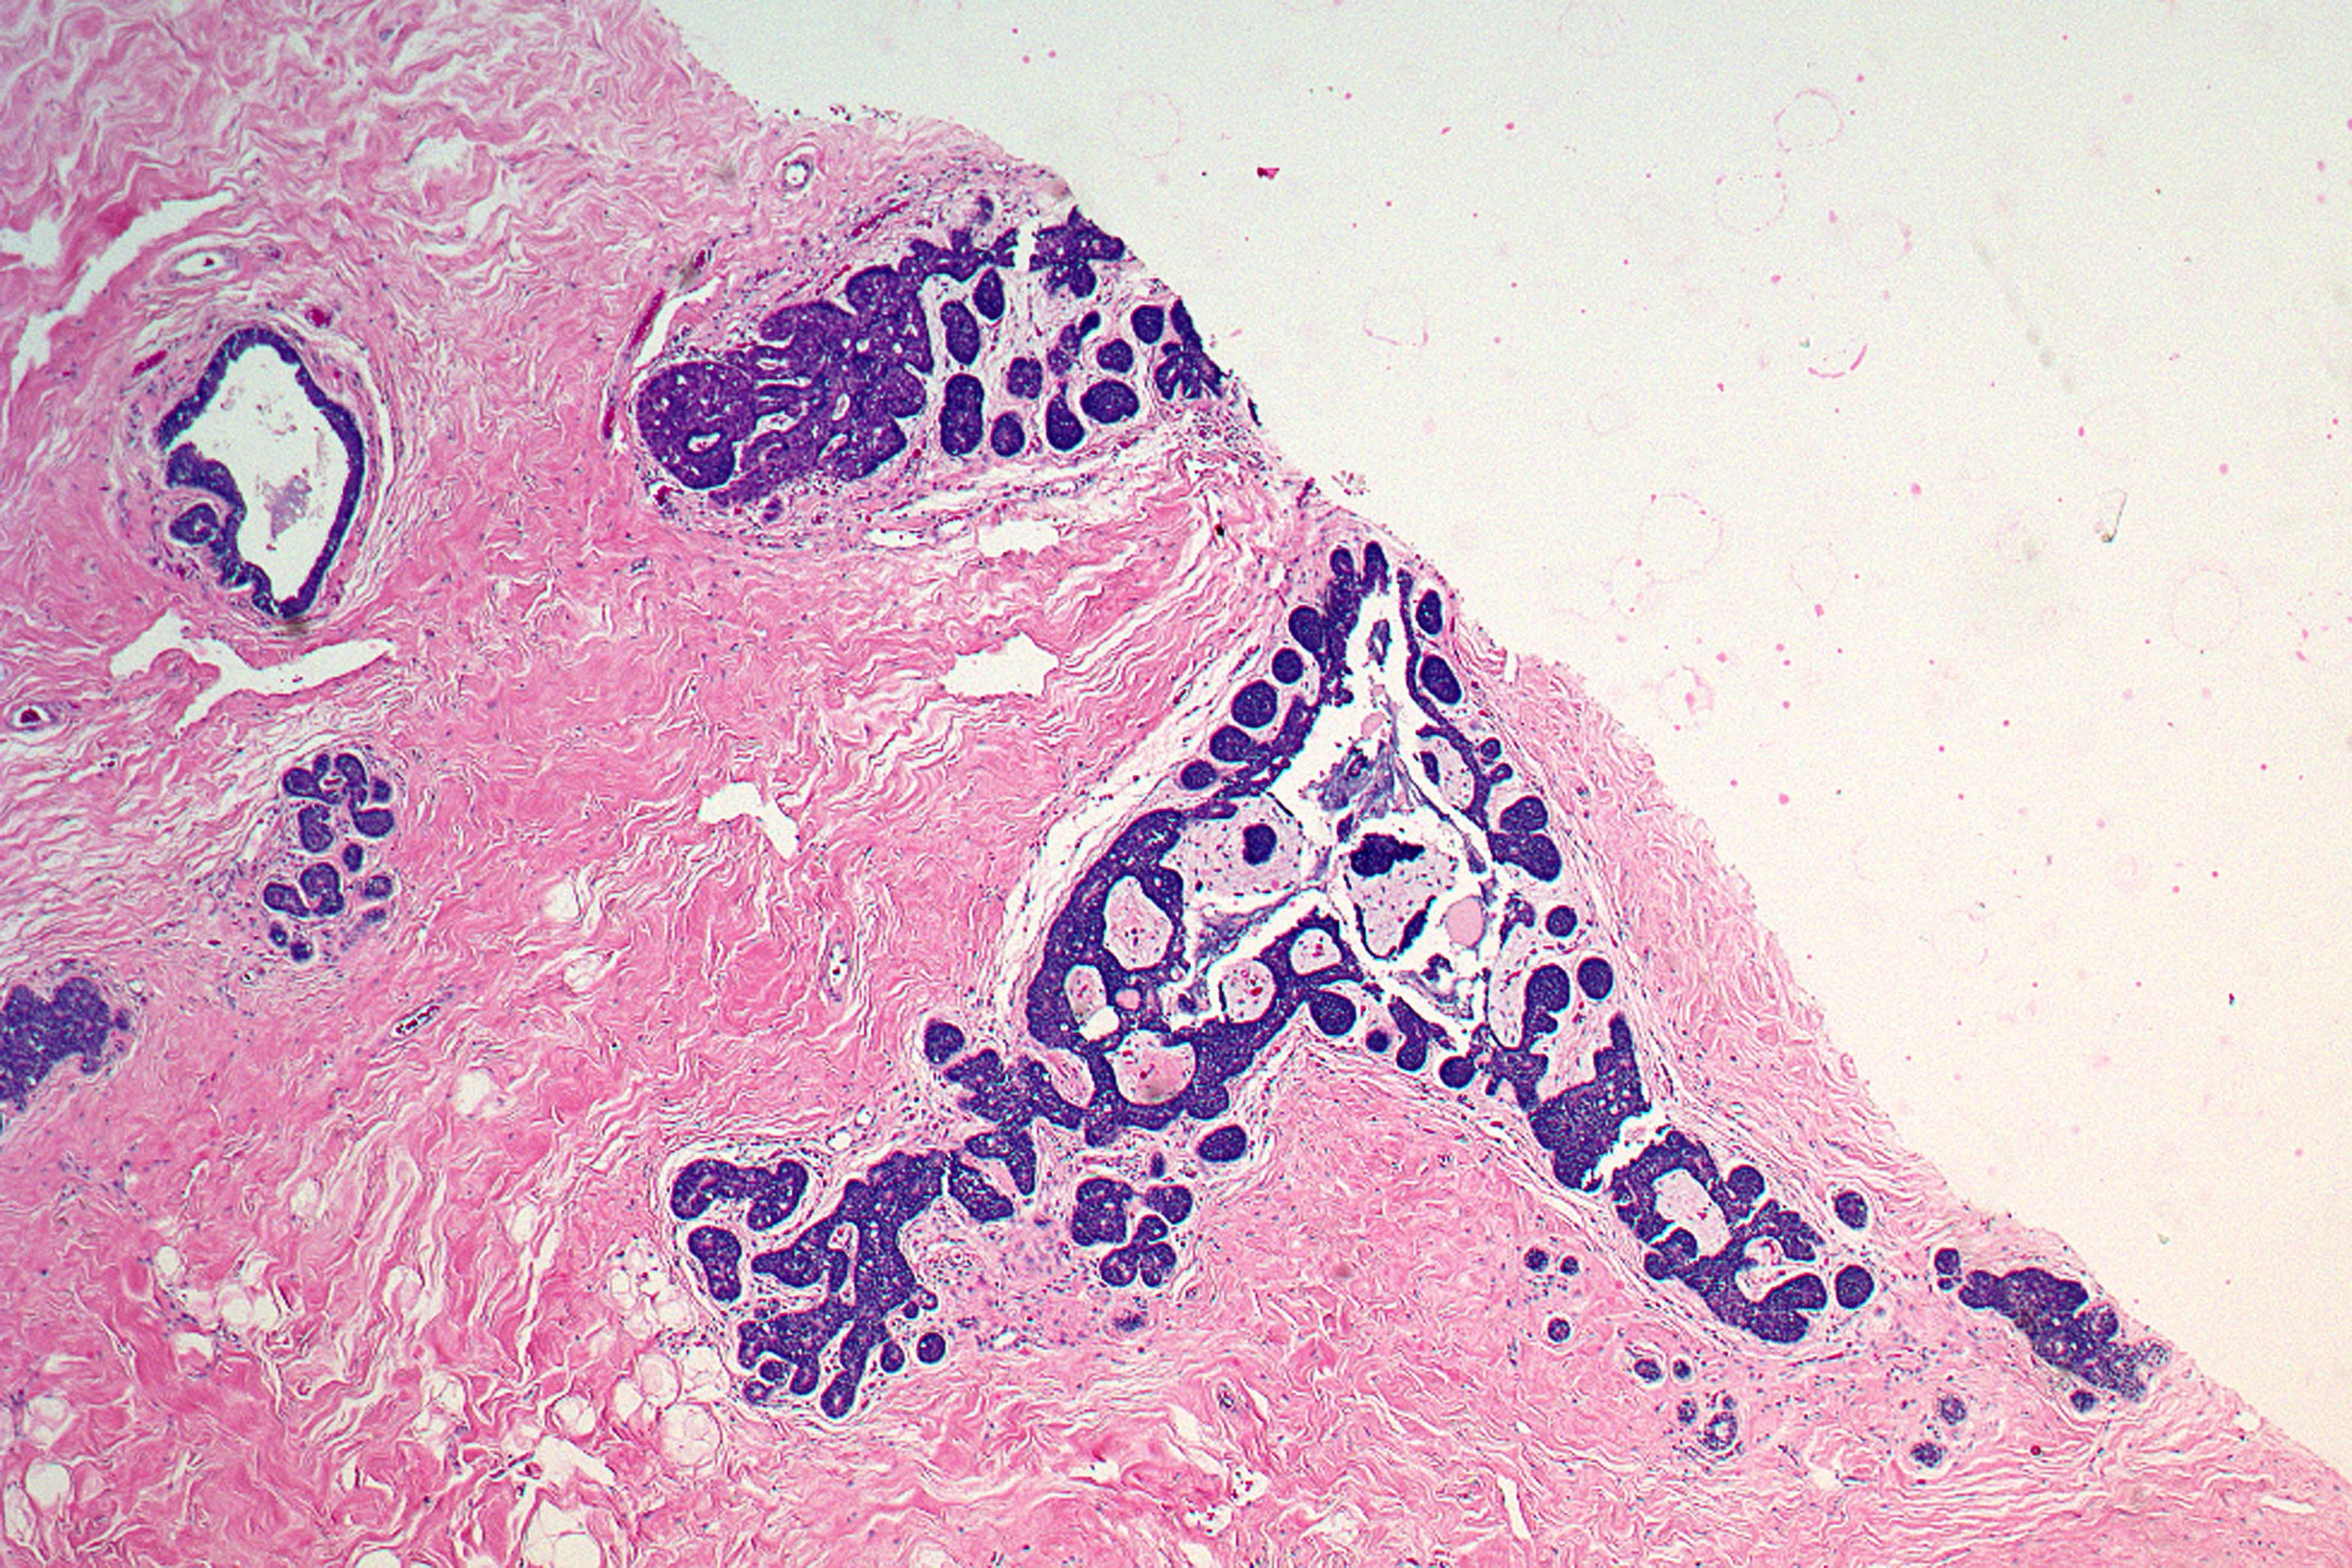 At higher magnification, a cellular proliferation is evidentthat involves several lobular units and adjoining ducts.